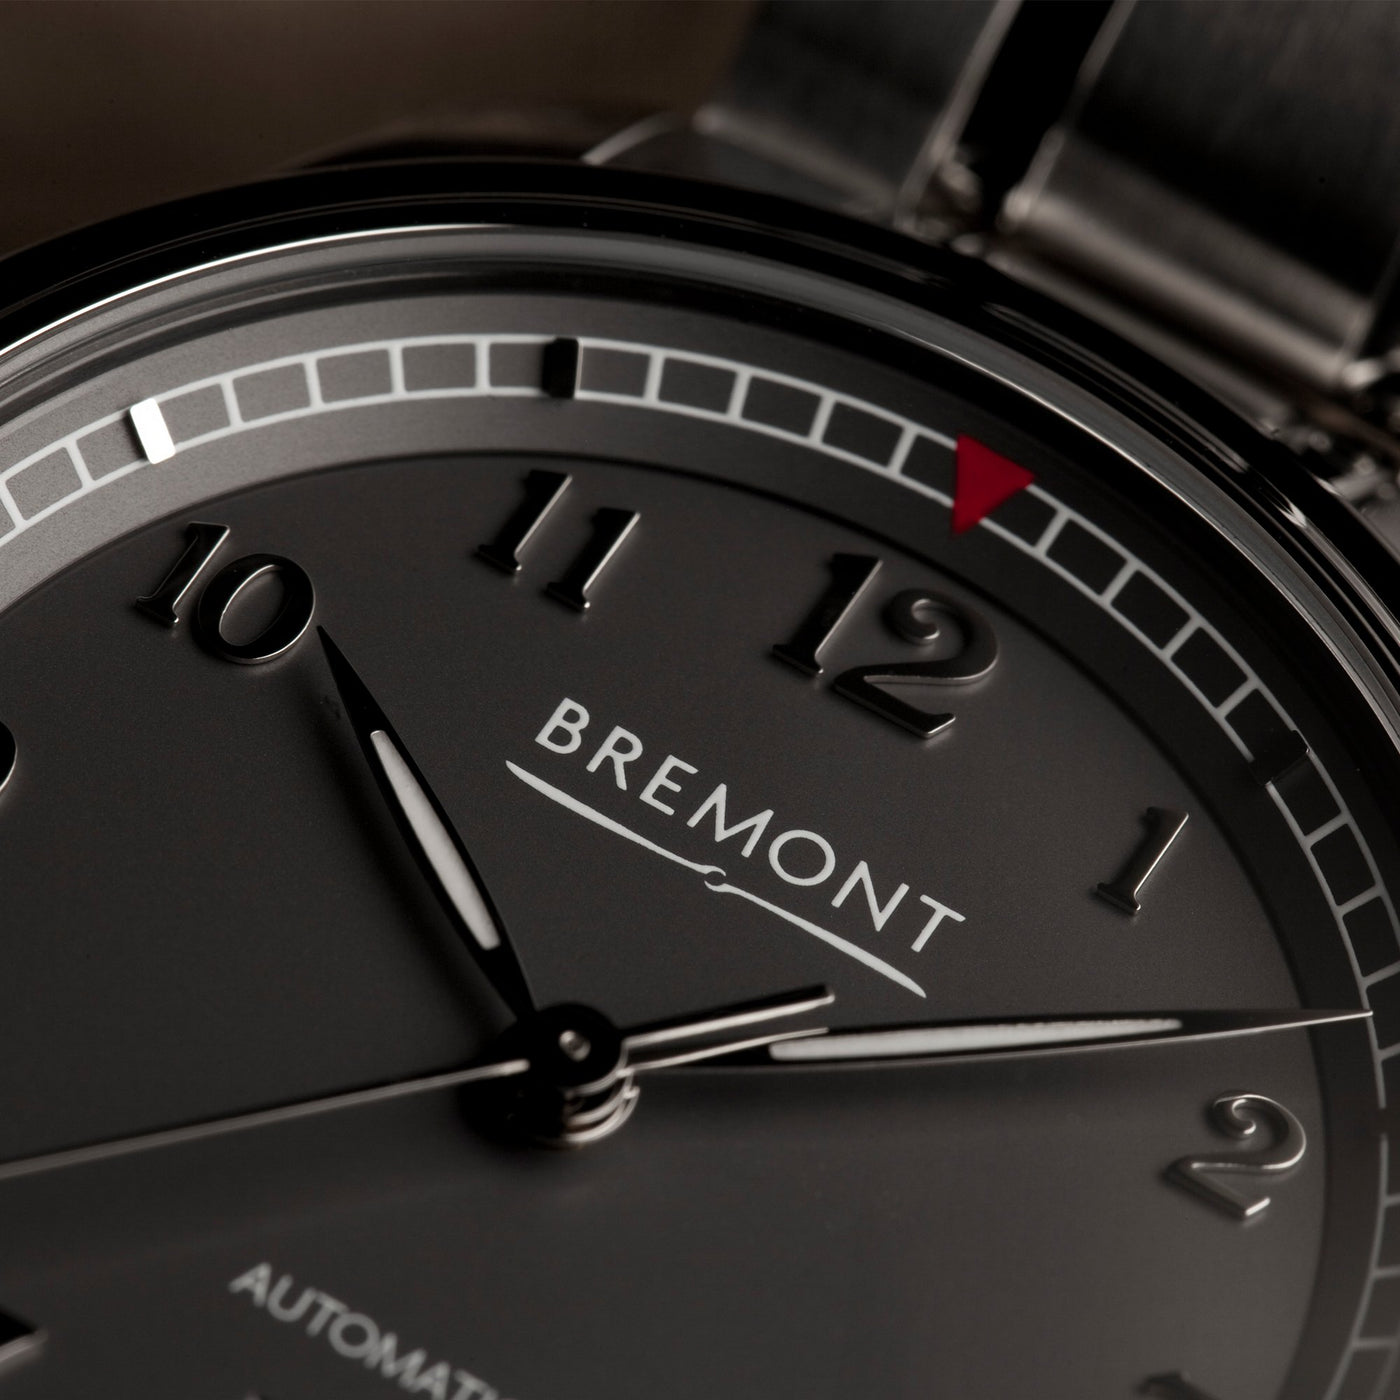 Bremont Airco Mach 2 Anthracite Lifestyle